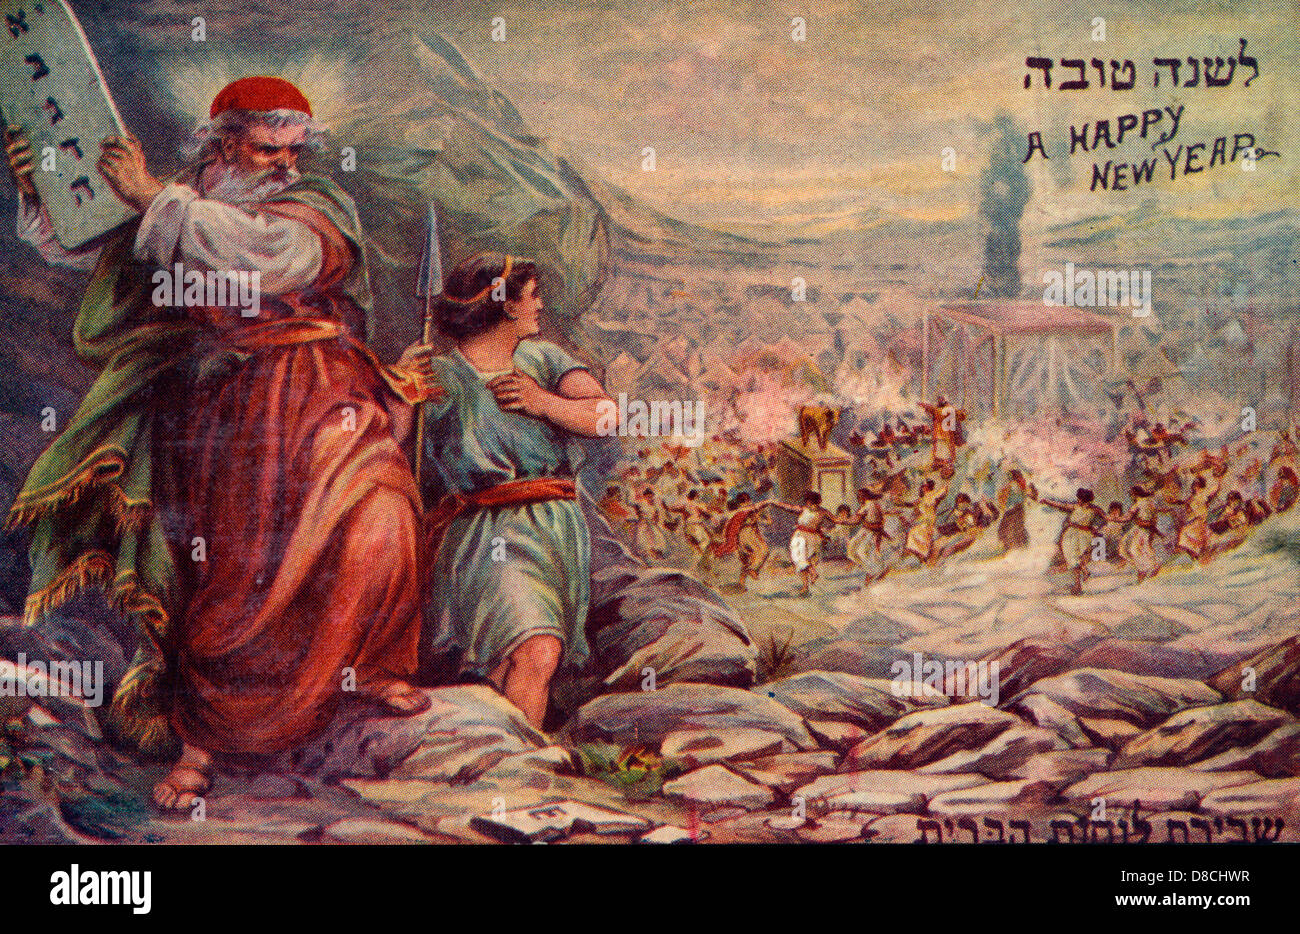 A Happy New Year - Moses preparing to smash the Ten Commandment tablets as, in the background, Israelites dance - Stock Image